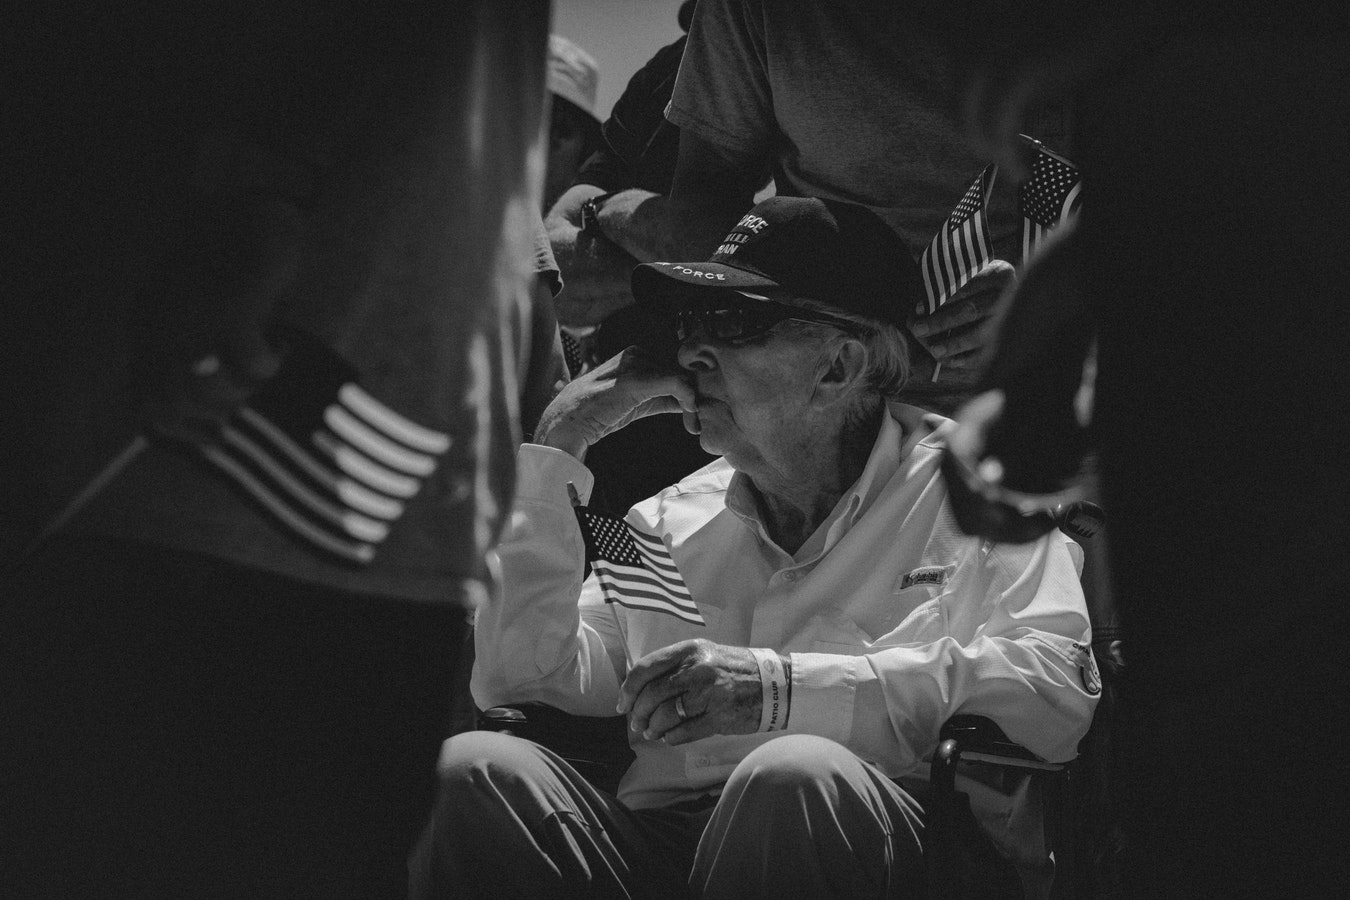 An older veteran sitting and holding an american flag.